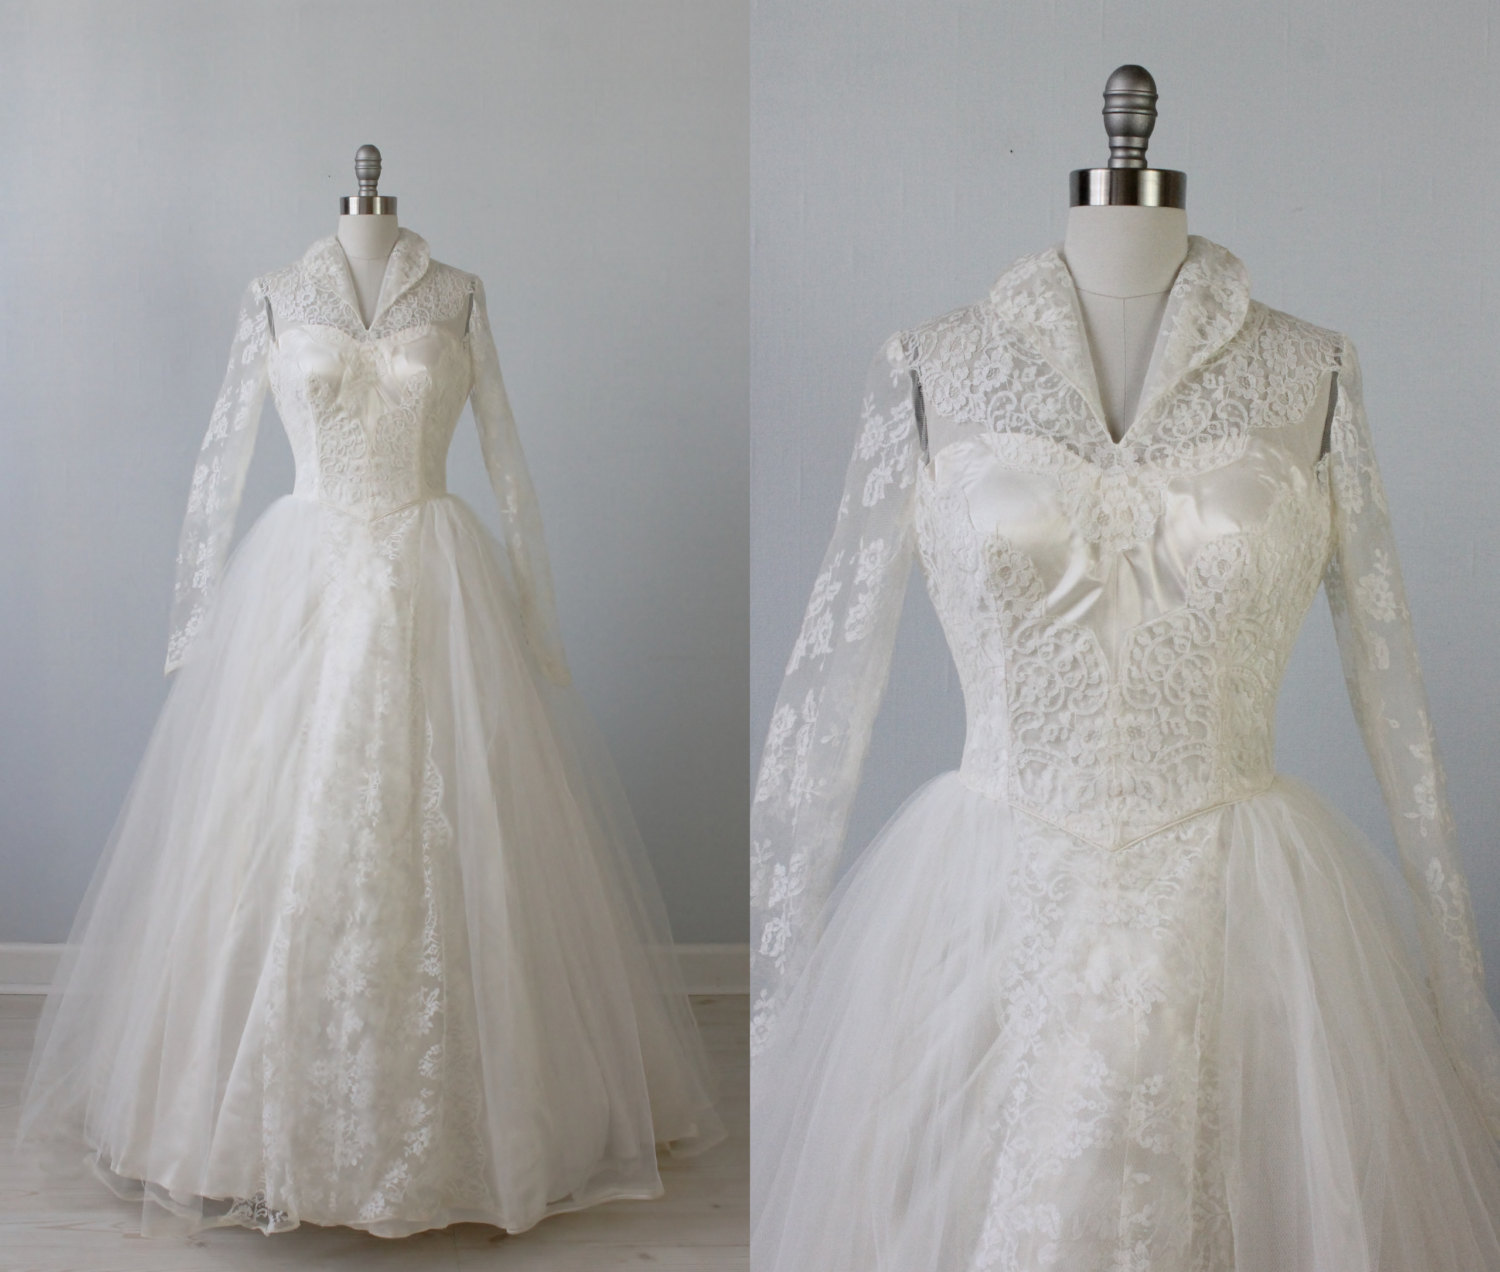 Vintage Wedding Dresses 1960s: 20 Incredible Wedding Dresses For Under $1000